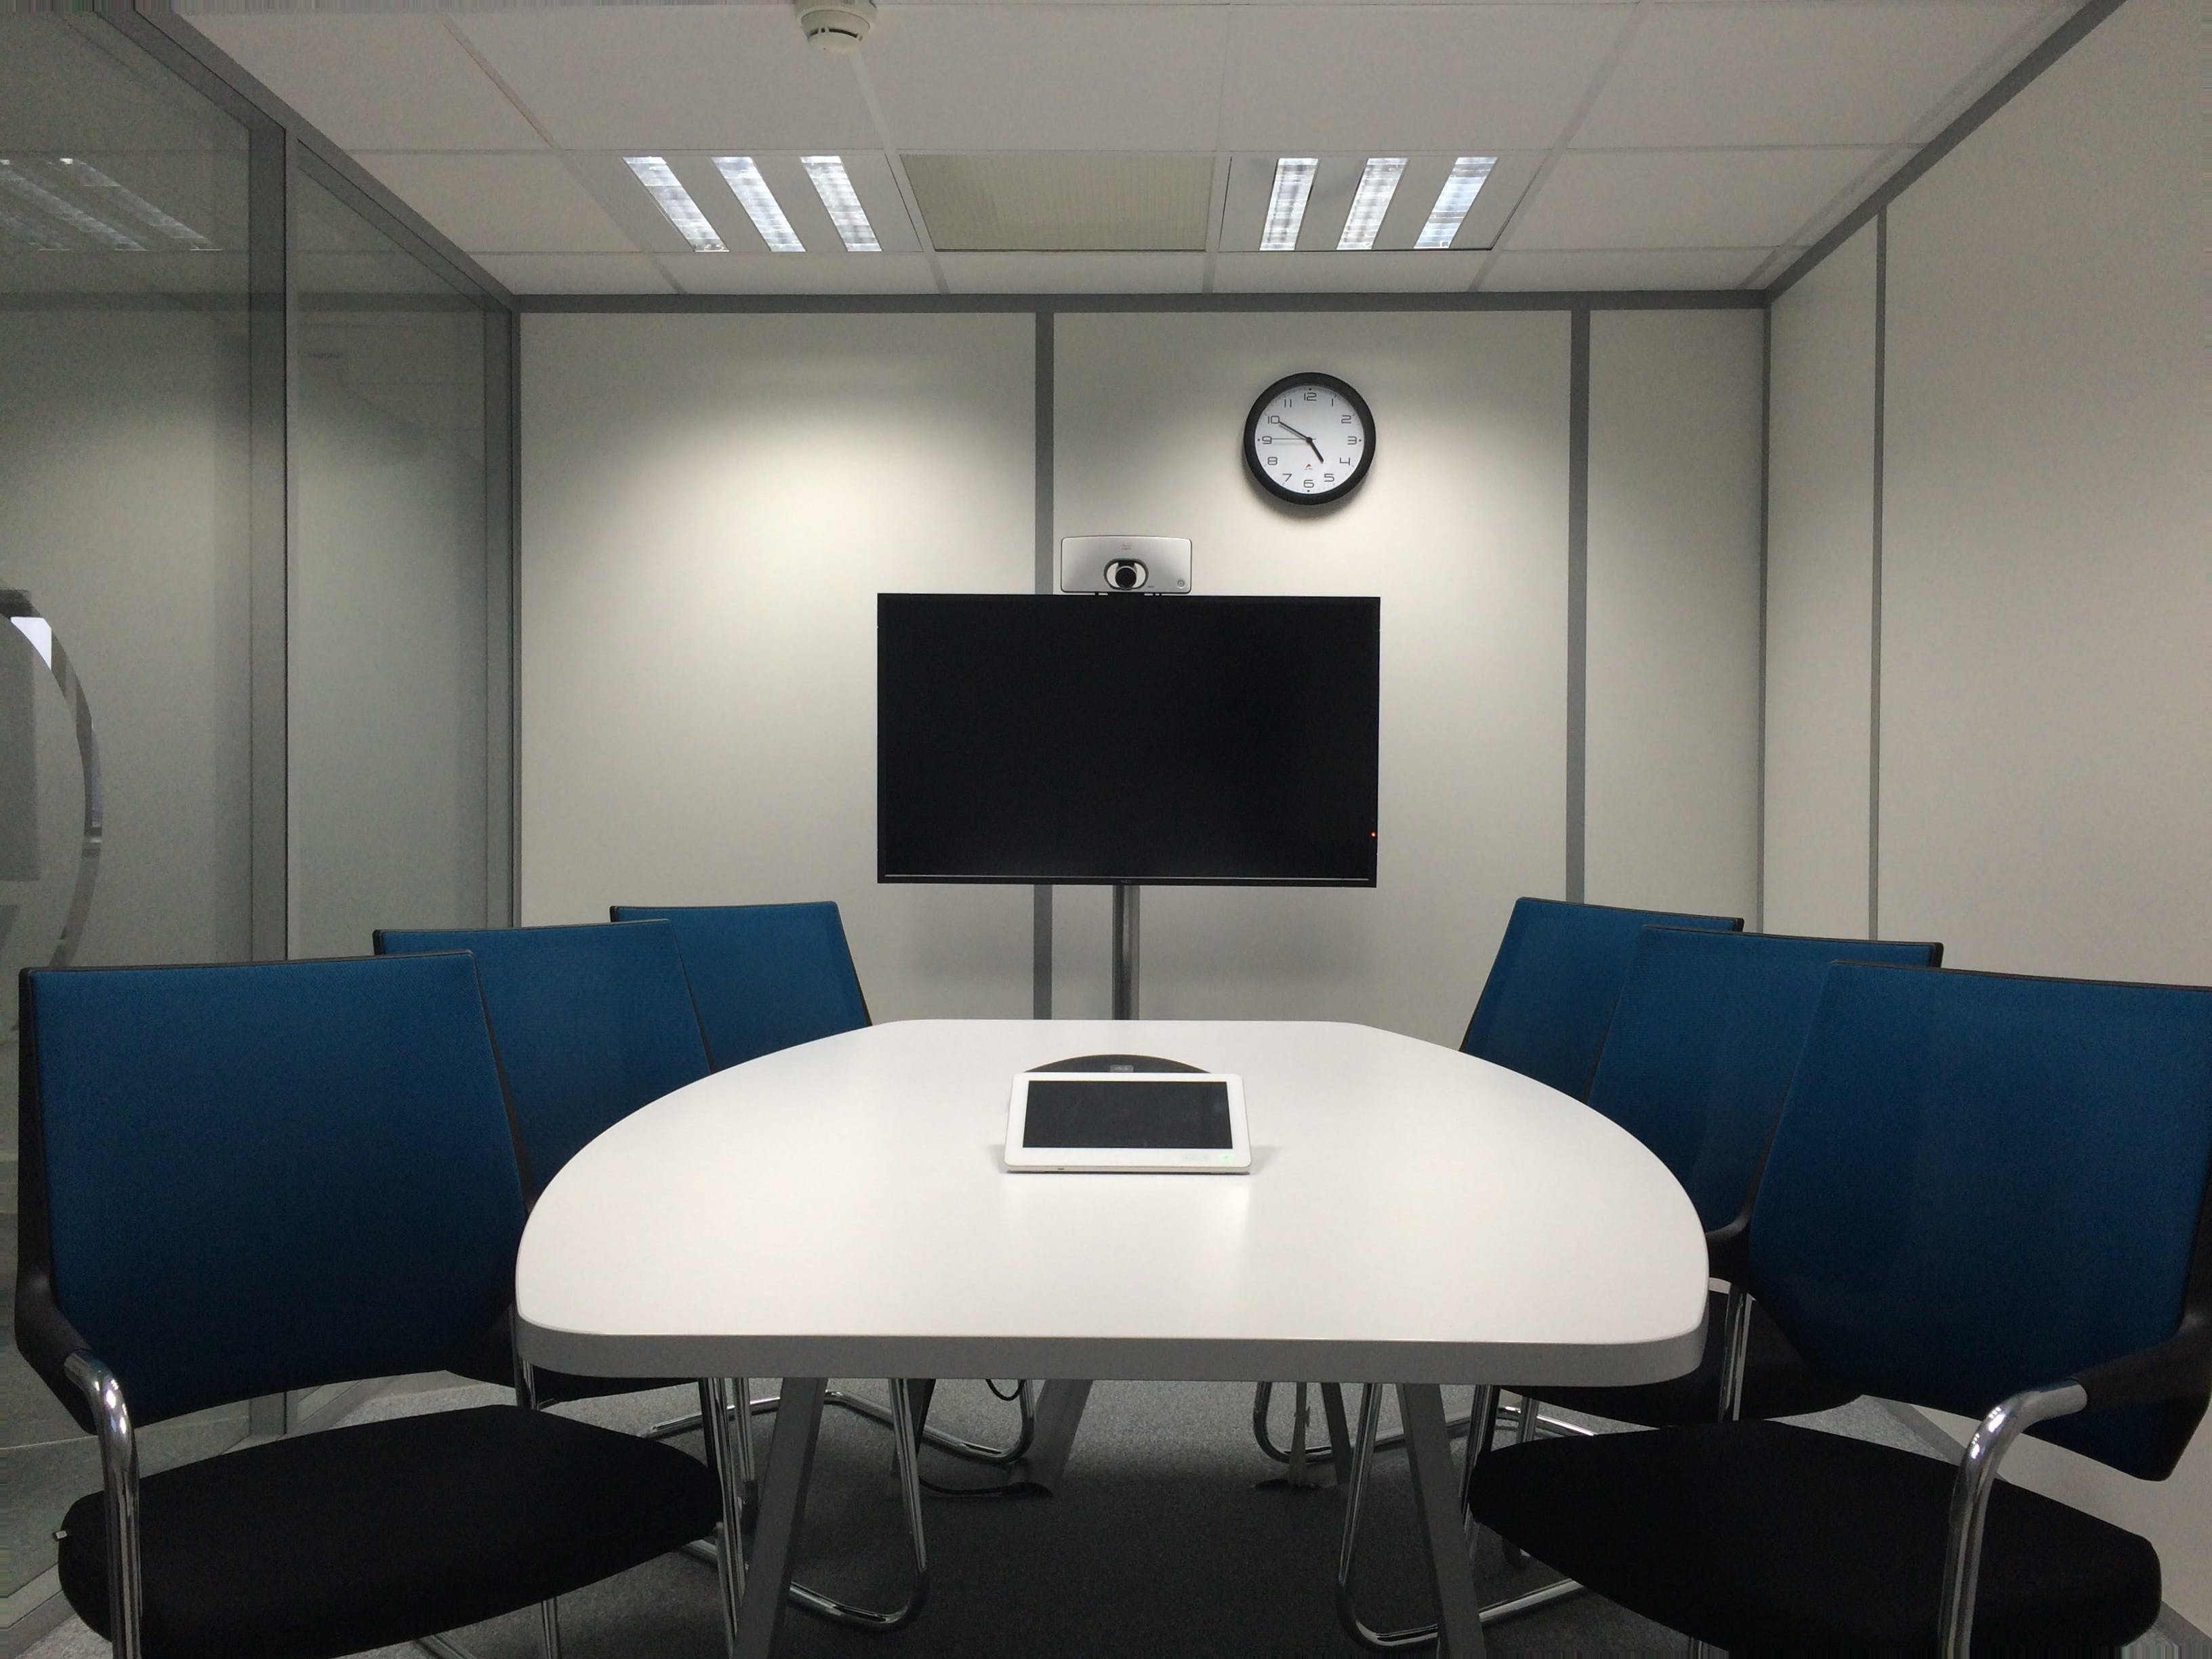 chairs, conference room, corporate